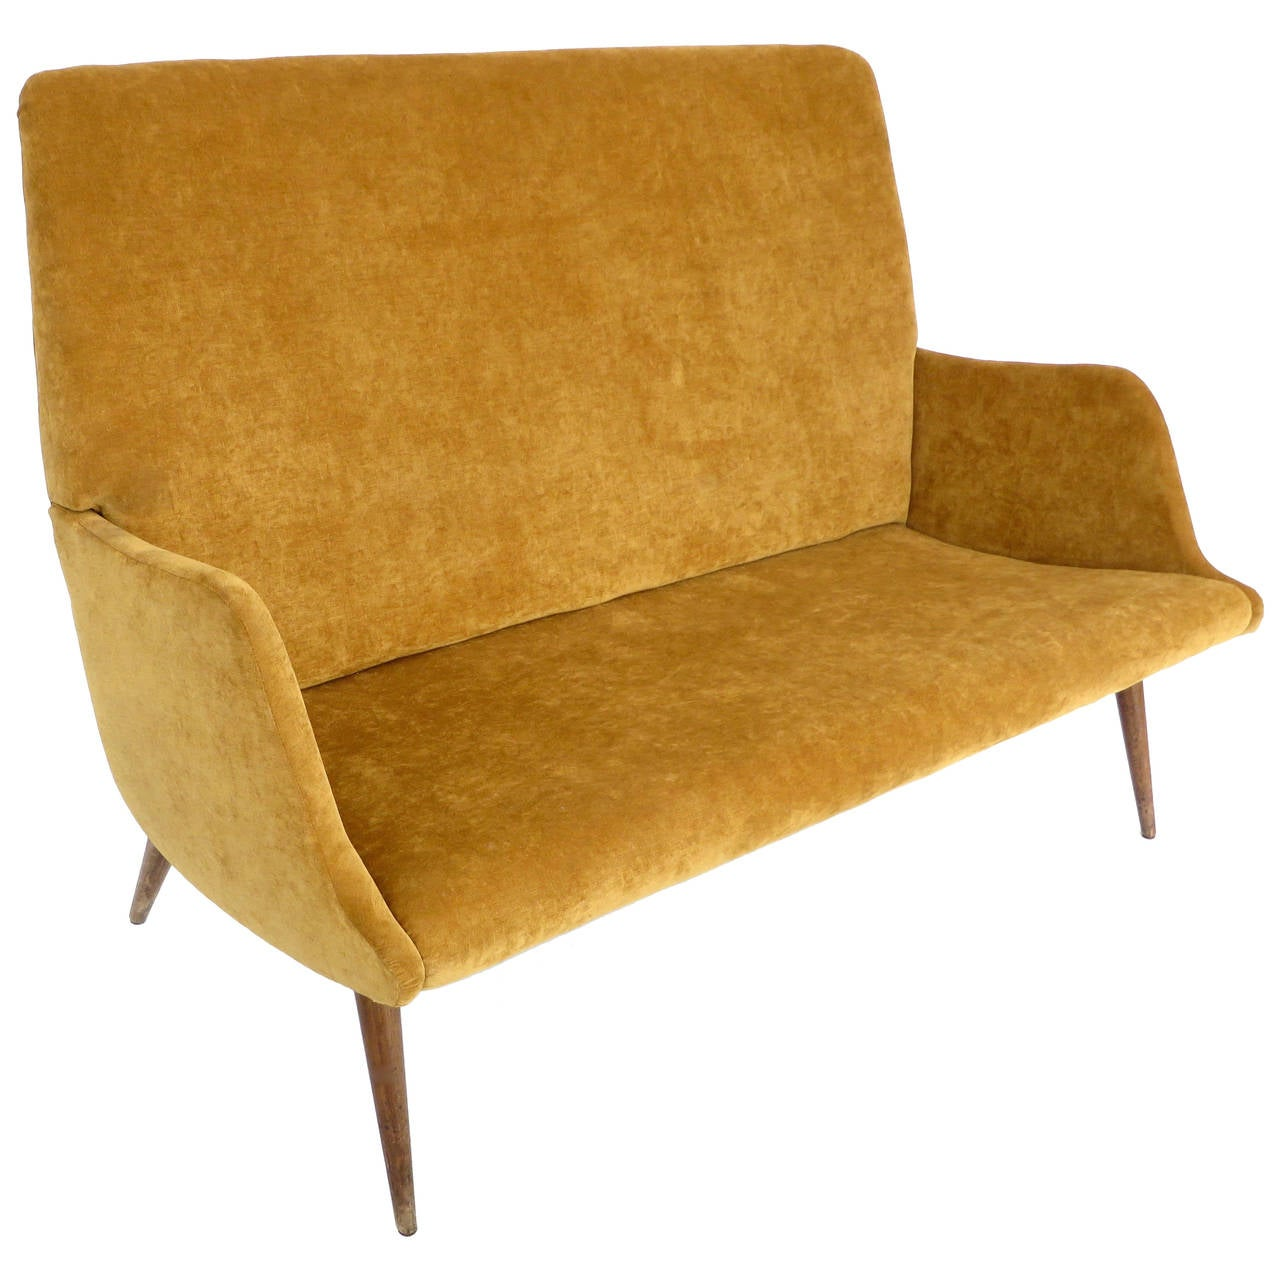 High Back Italian Settee or Canape by Carlo di Carli For Sale